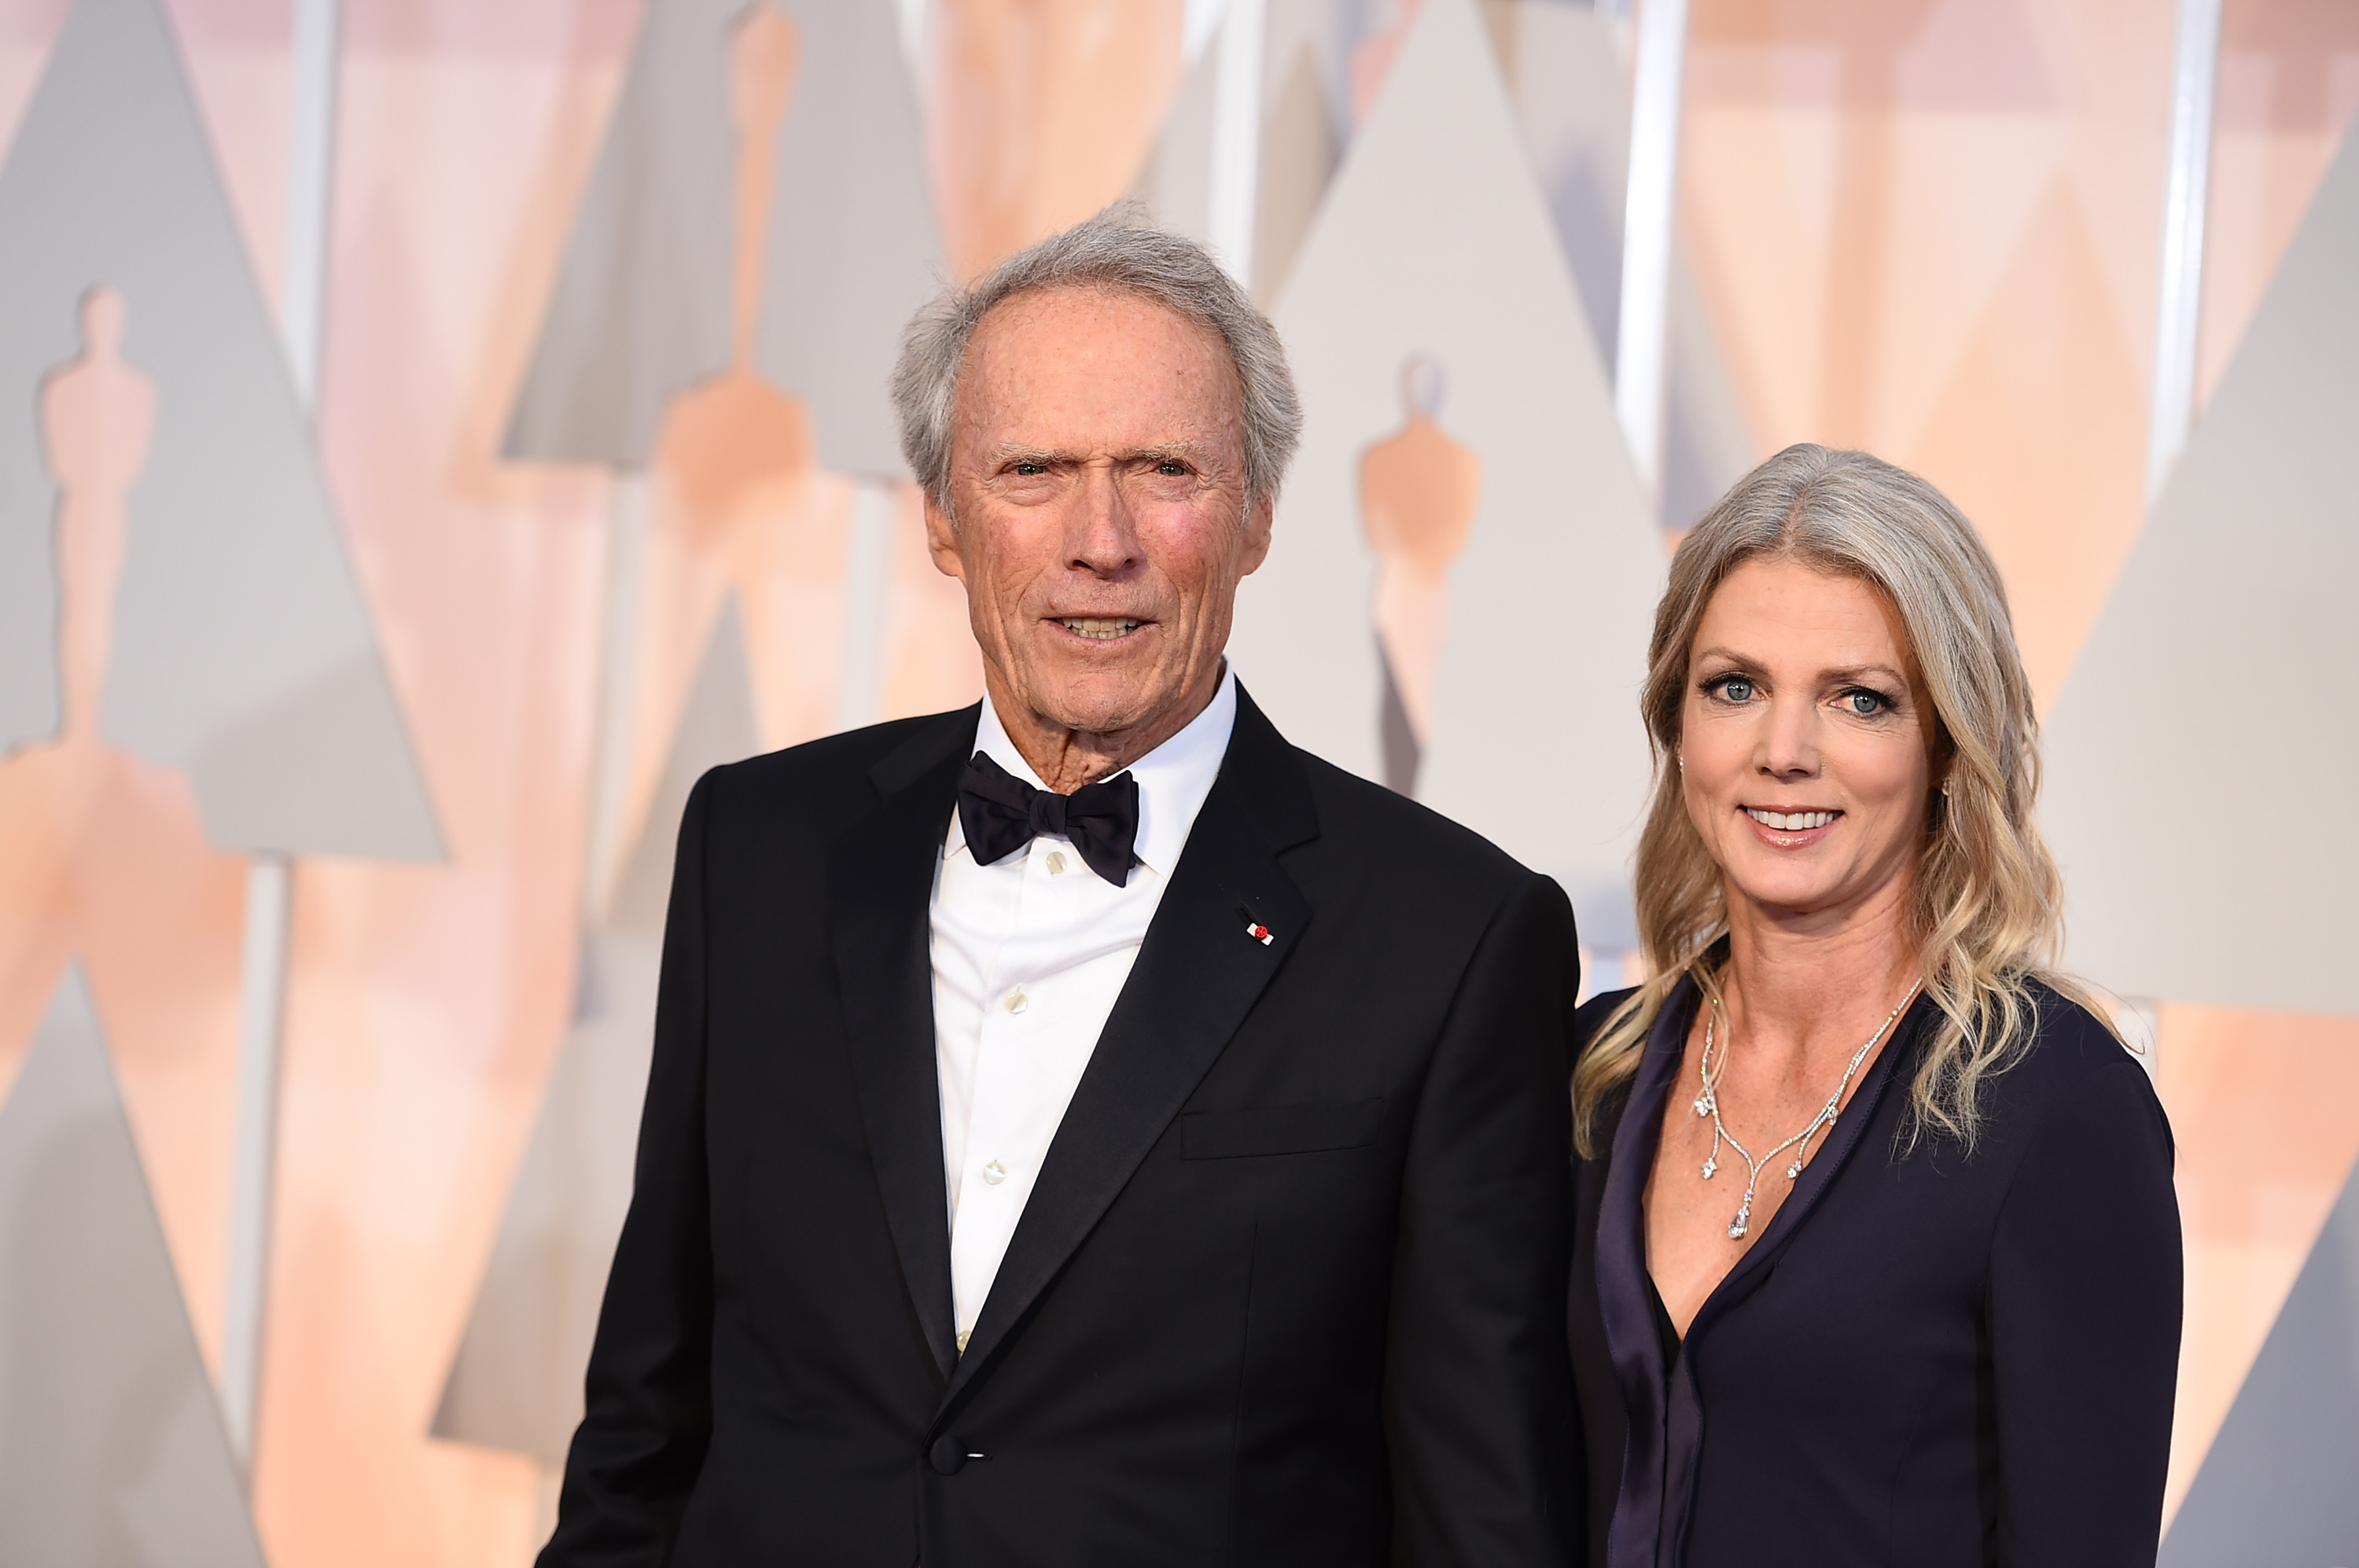 Clint Eastwood, left, and Christina Sandera arrive at the Oscars, at the Dolby Theatre in Los Angeles87th Academy Awards - Arrivals, Los Angeles, USA